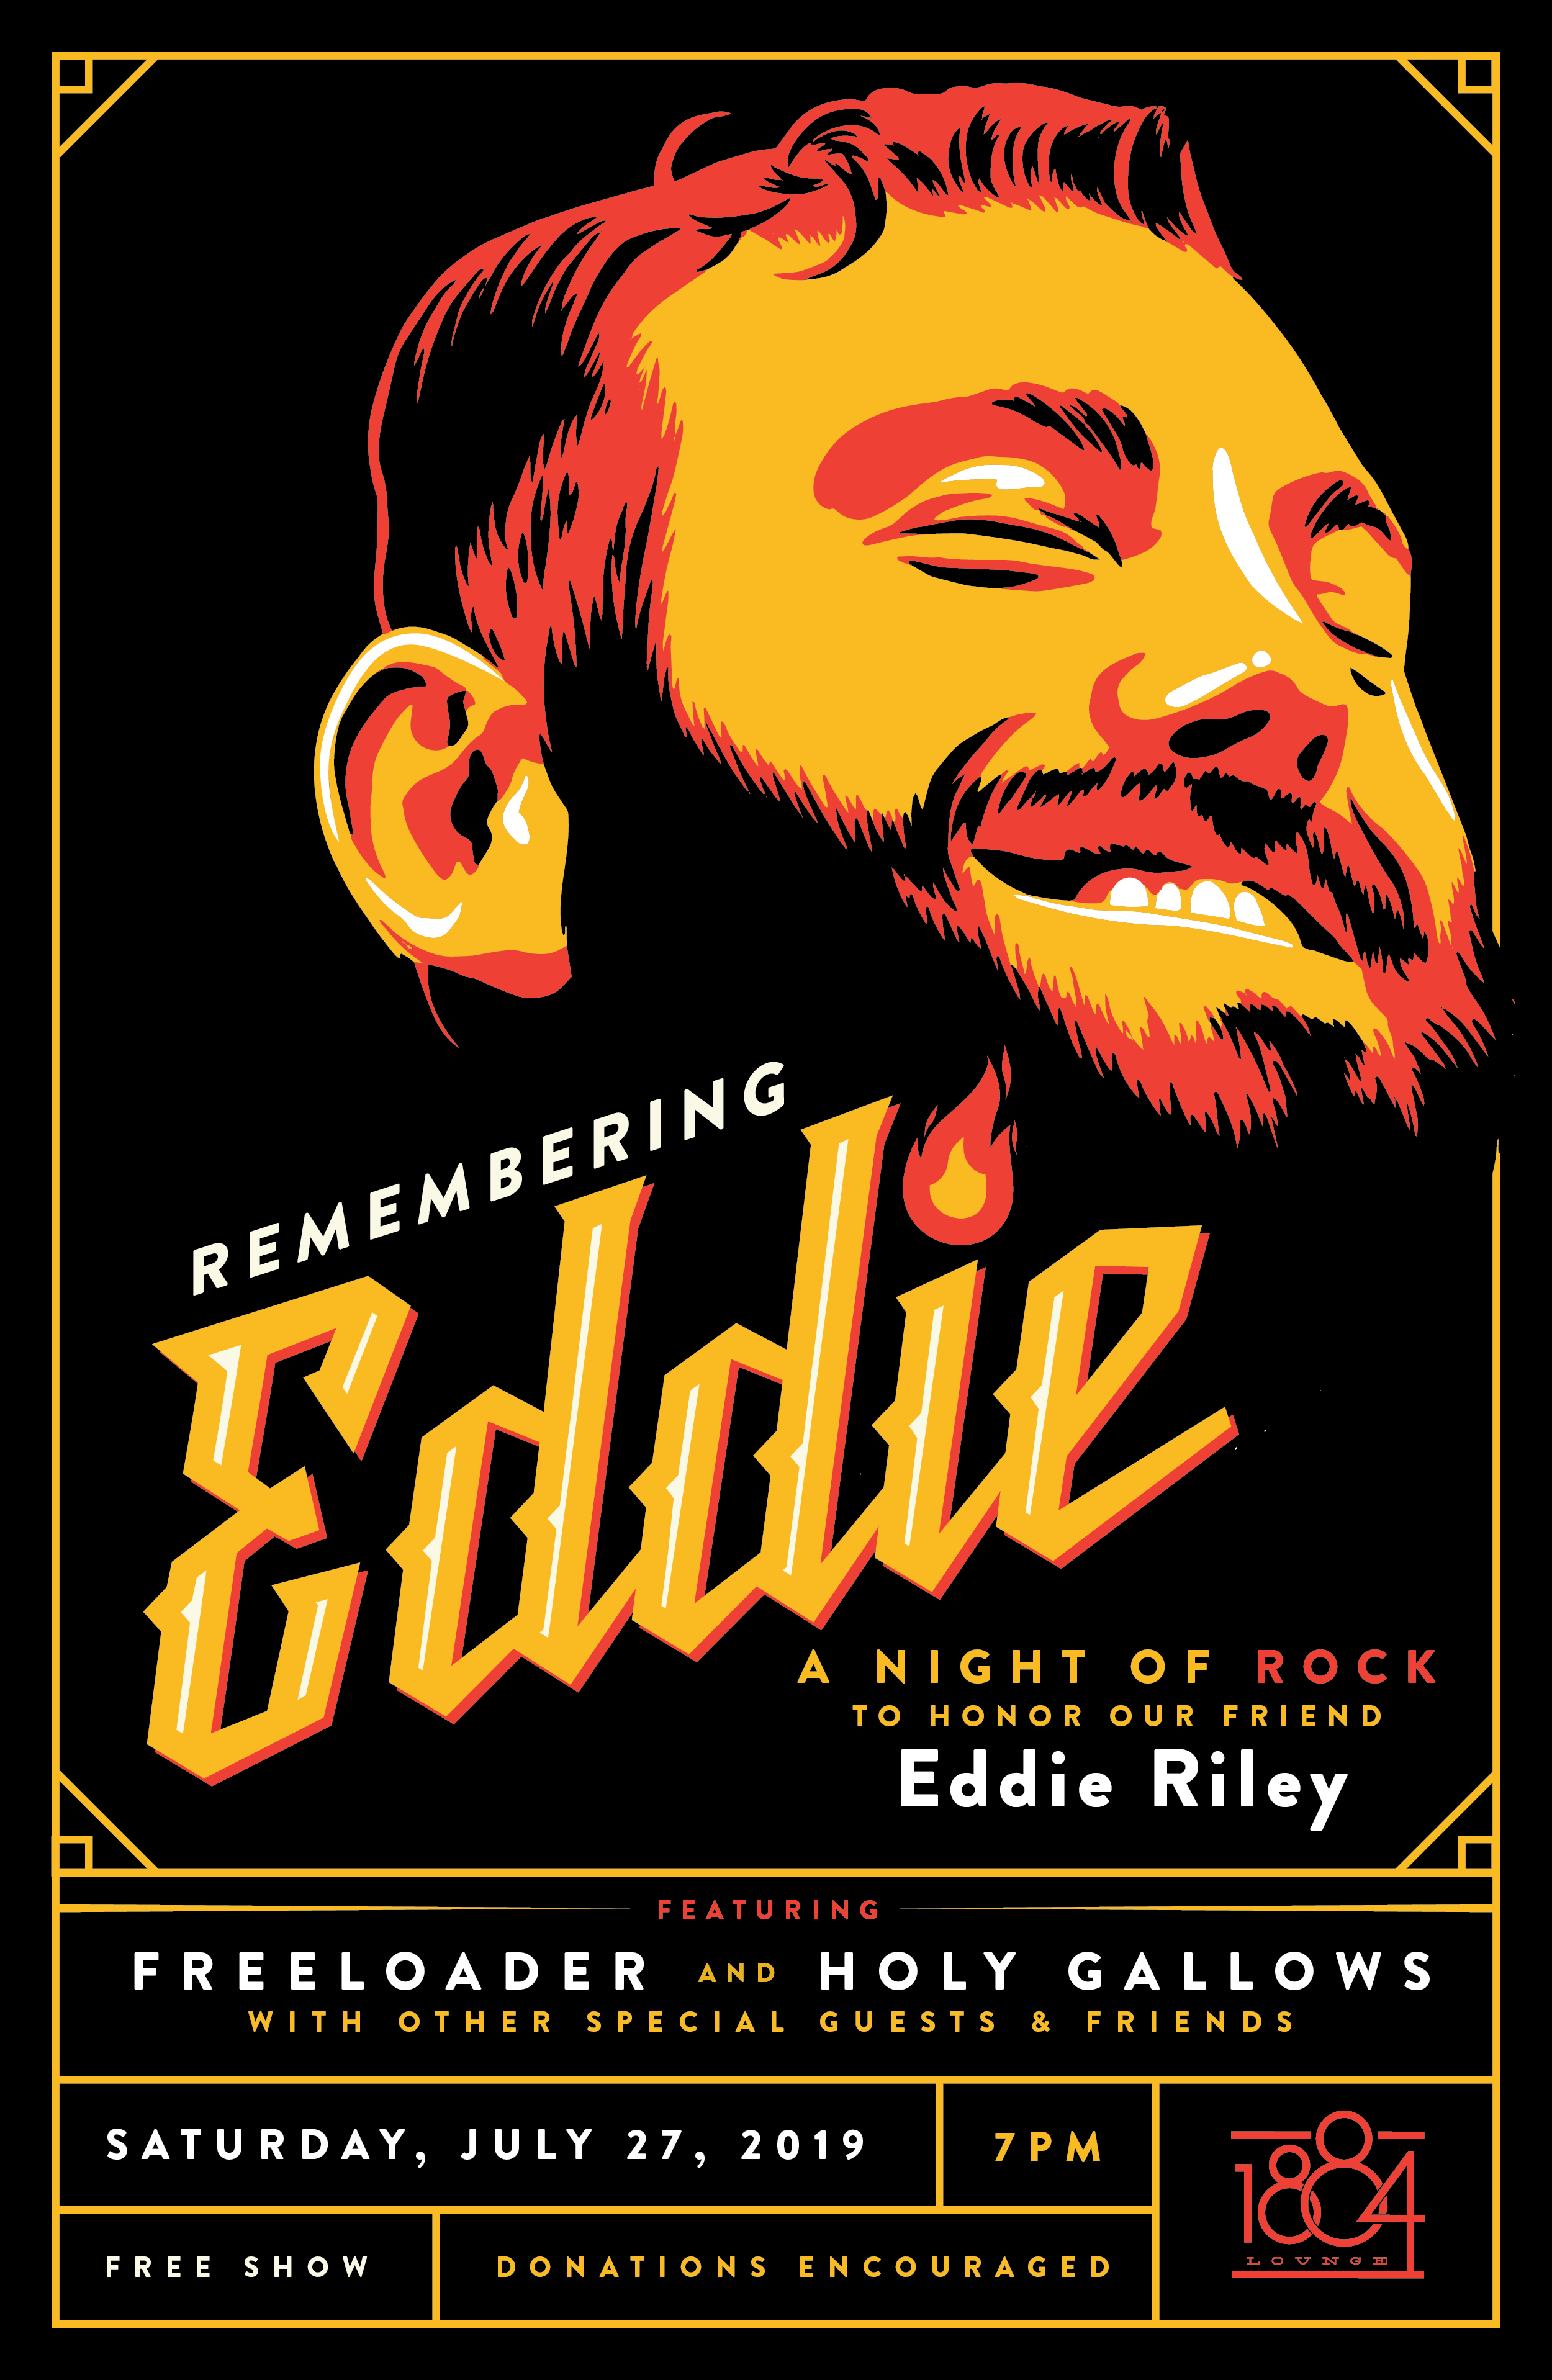 eddie-riley_memorial-show.png